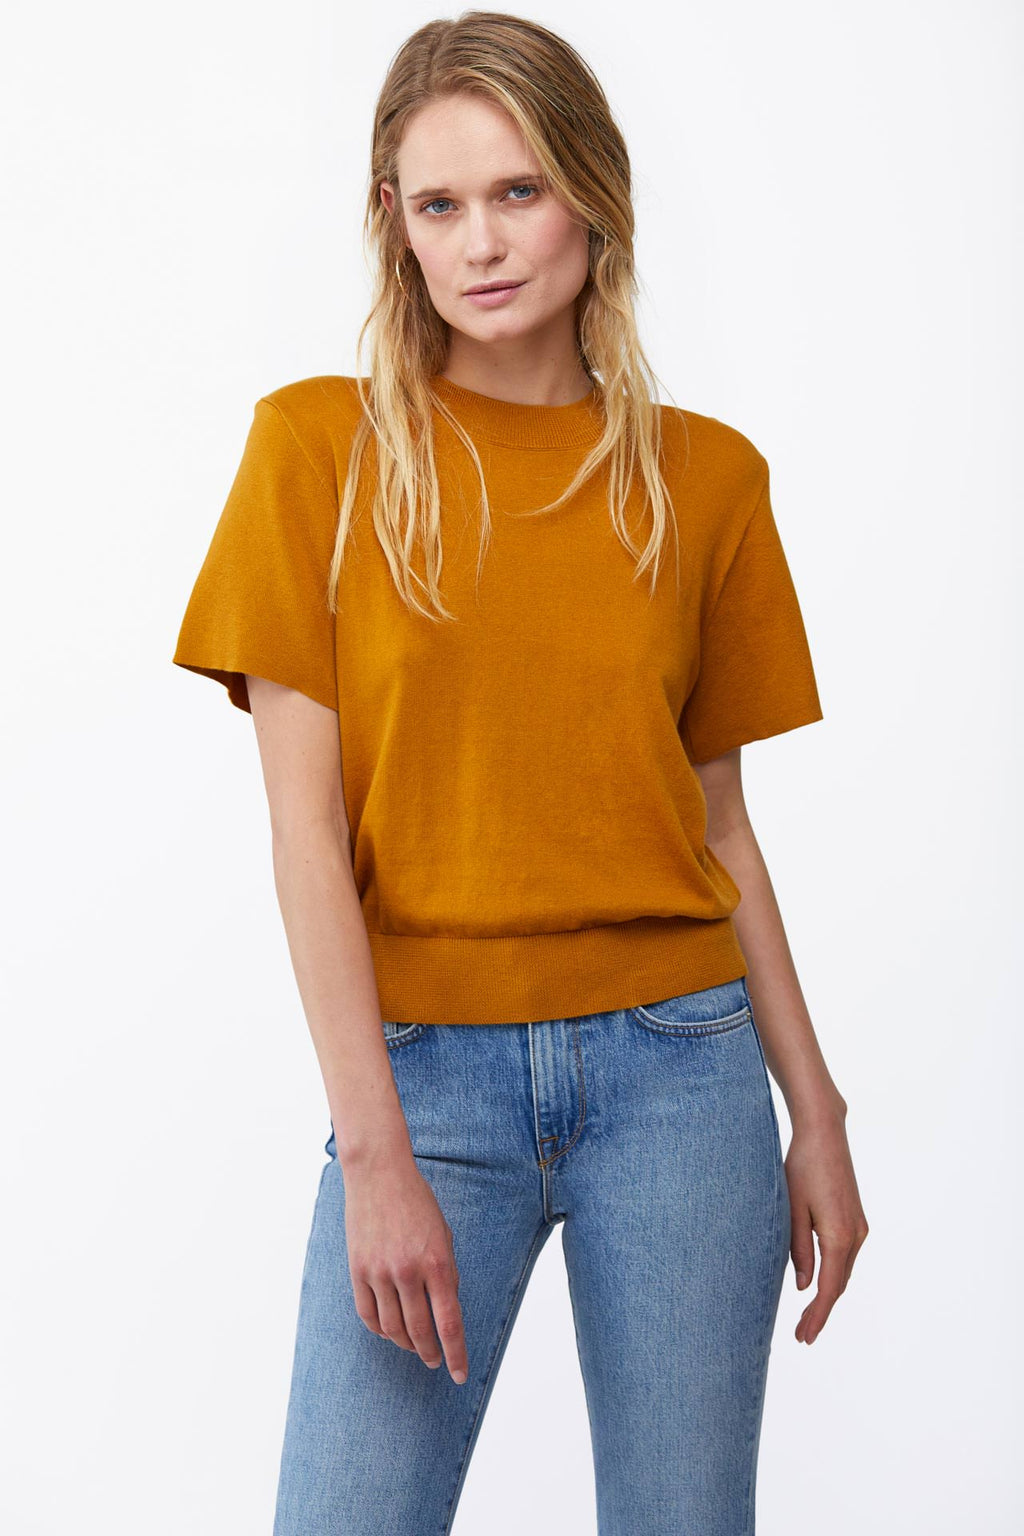 The Addie Sweater in Goldenrod